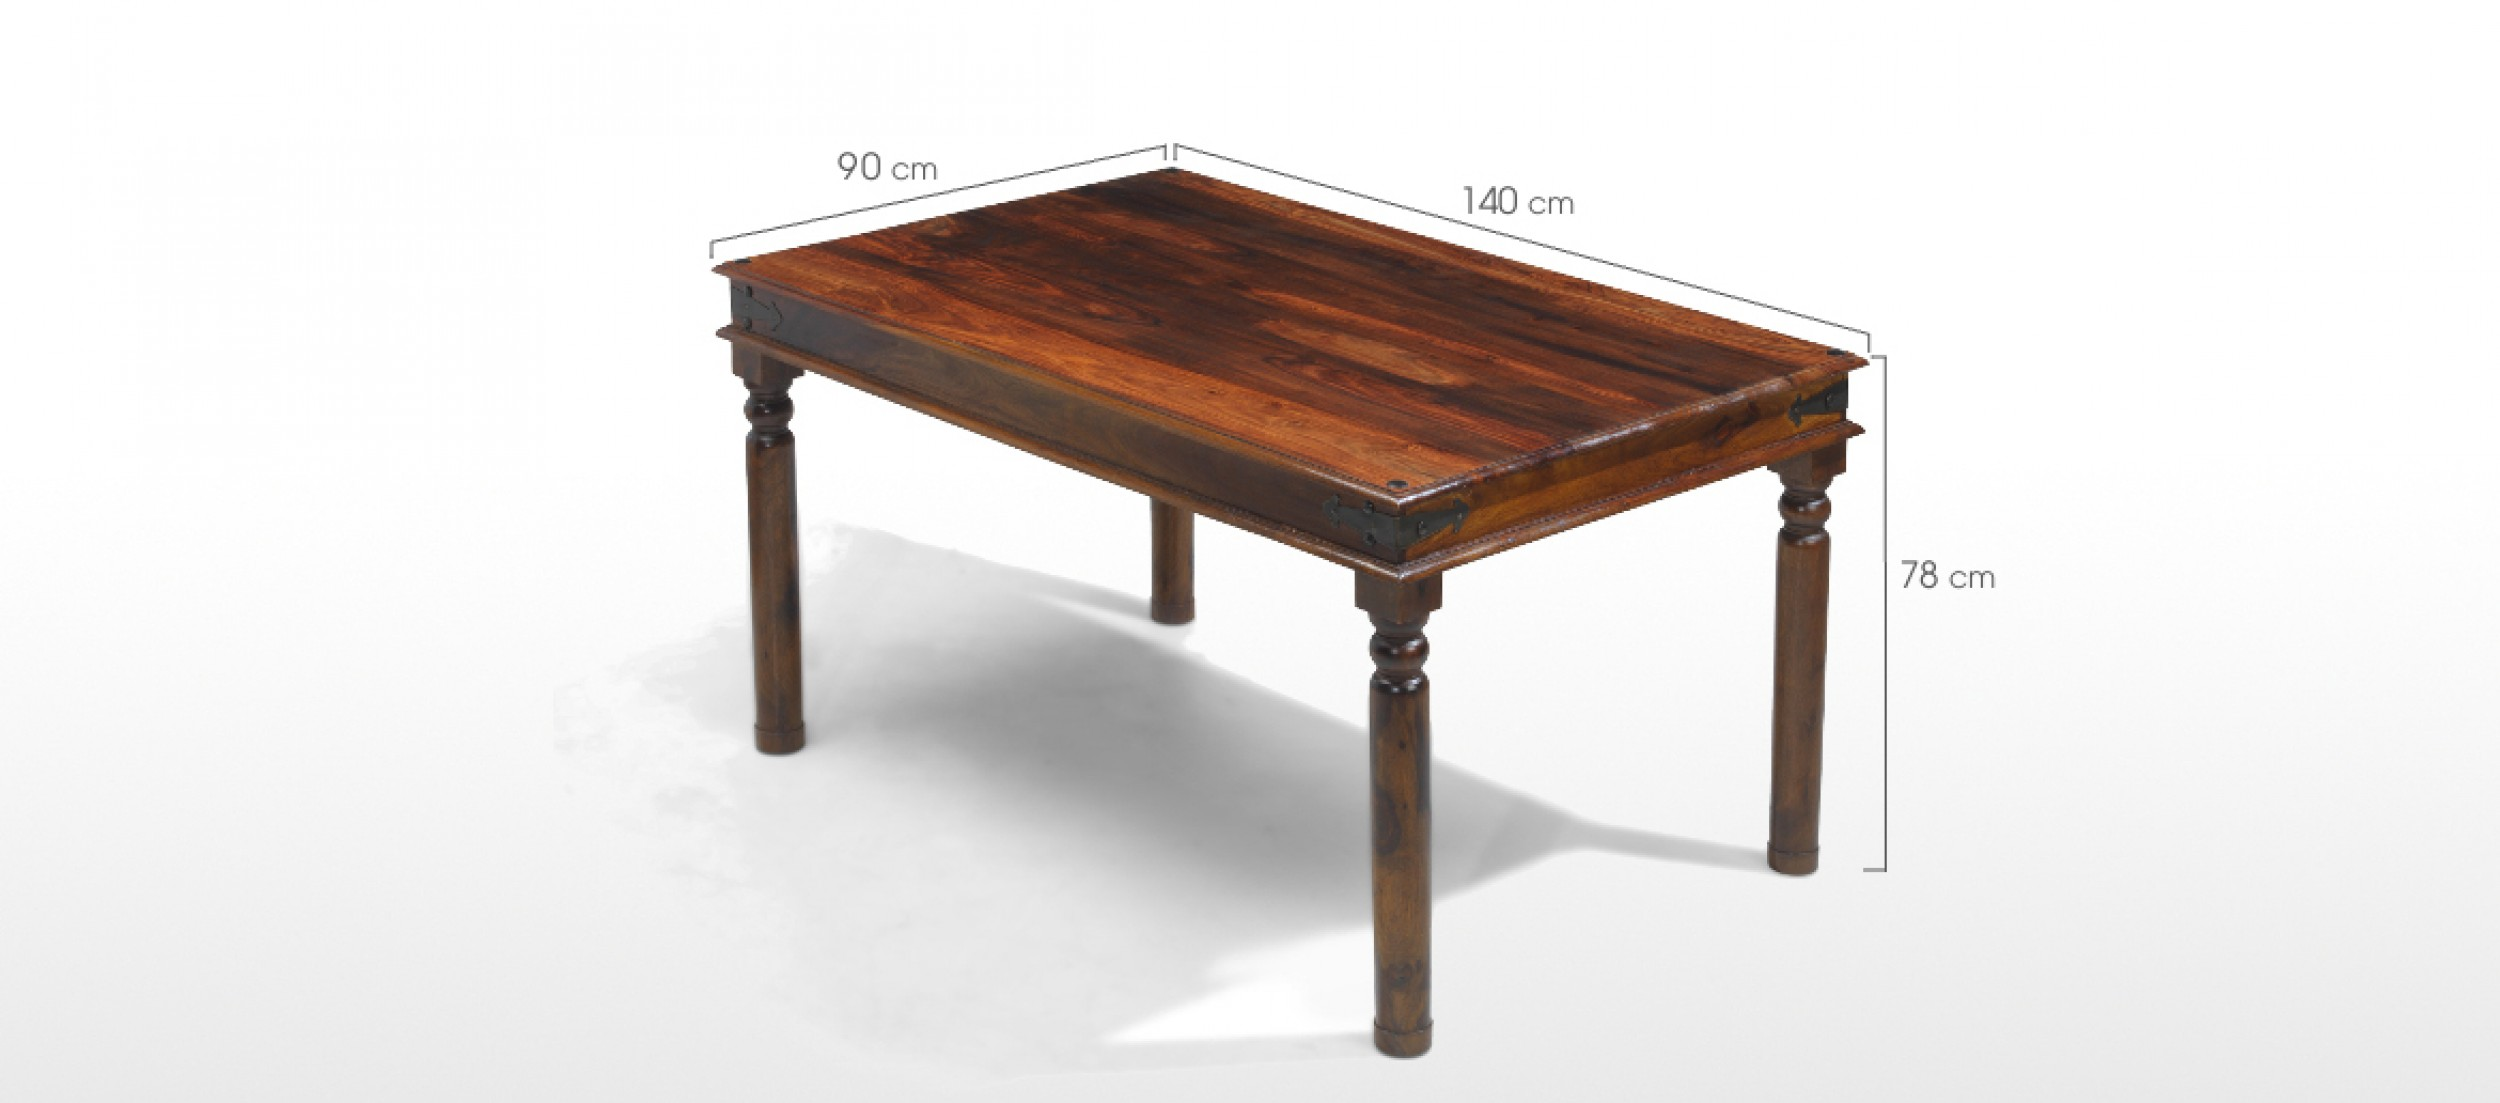 140 Cm Jali Sheesham 140 Cm Thakat Dining Table And 4 Chairs